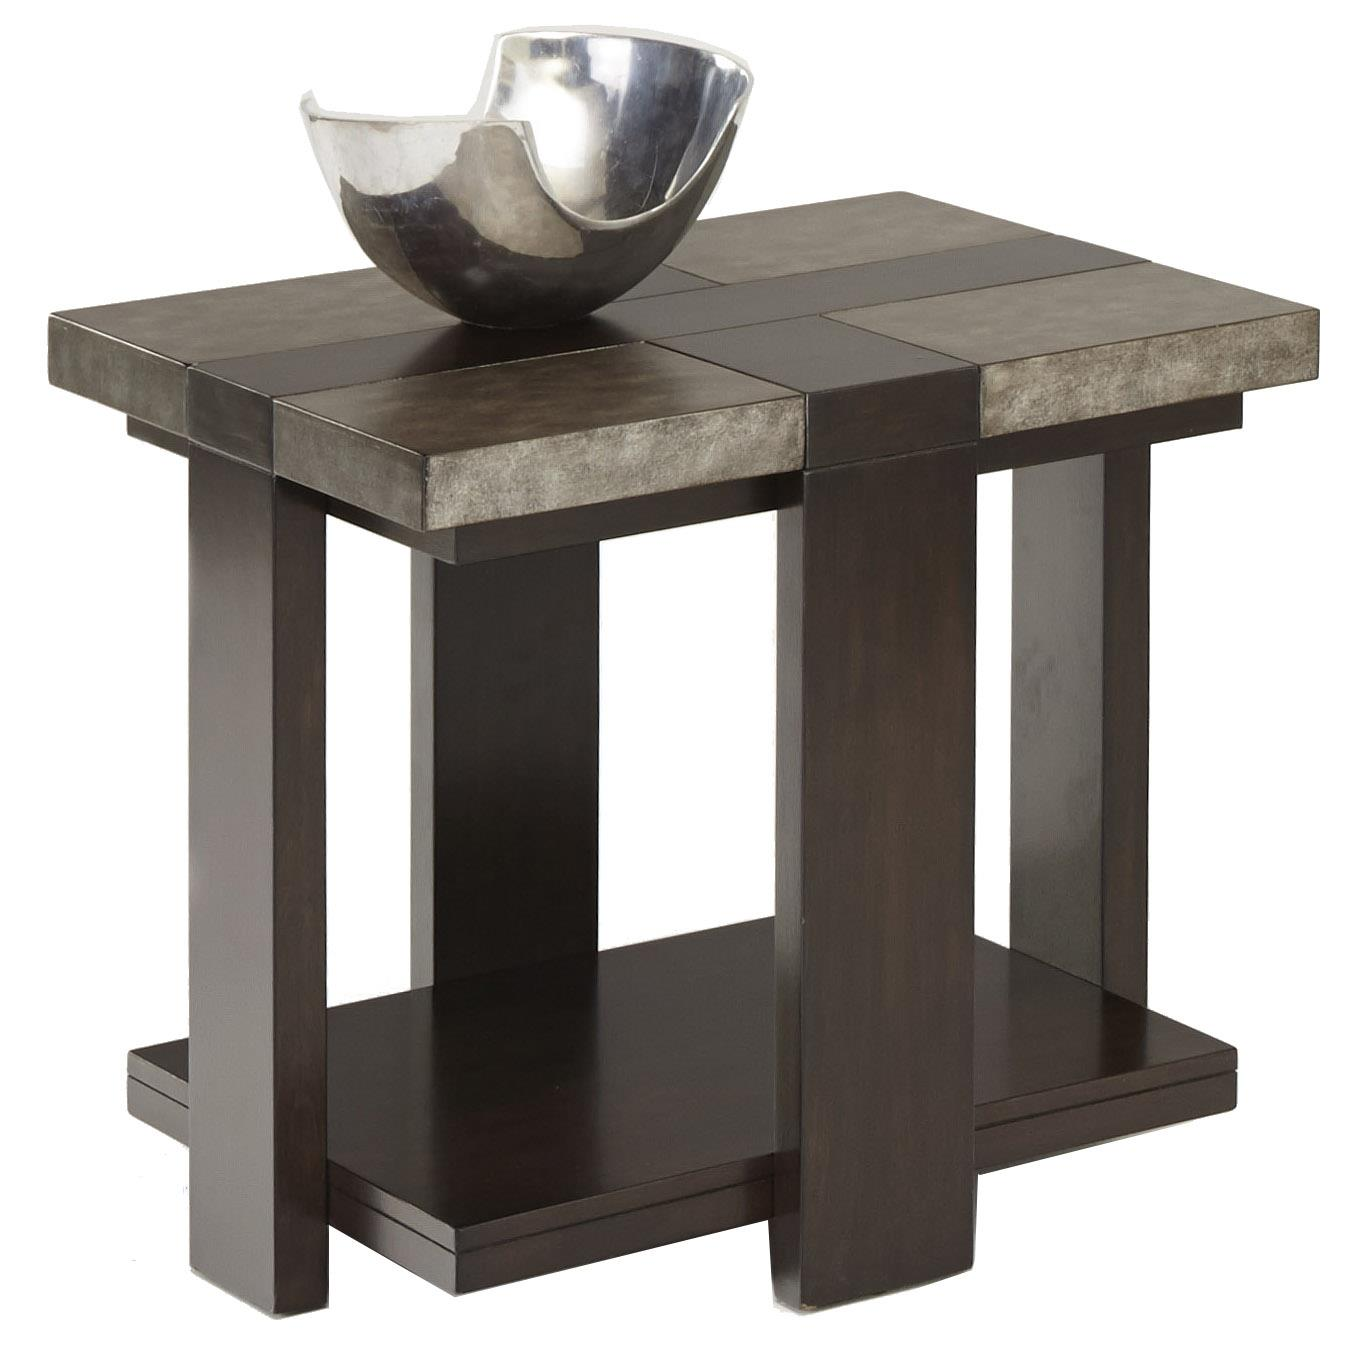 Progressive Furniture Concourse Chairside Table - Item Number: P488-29